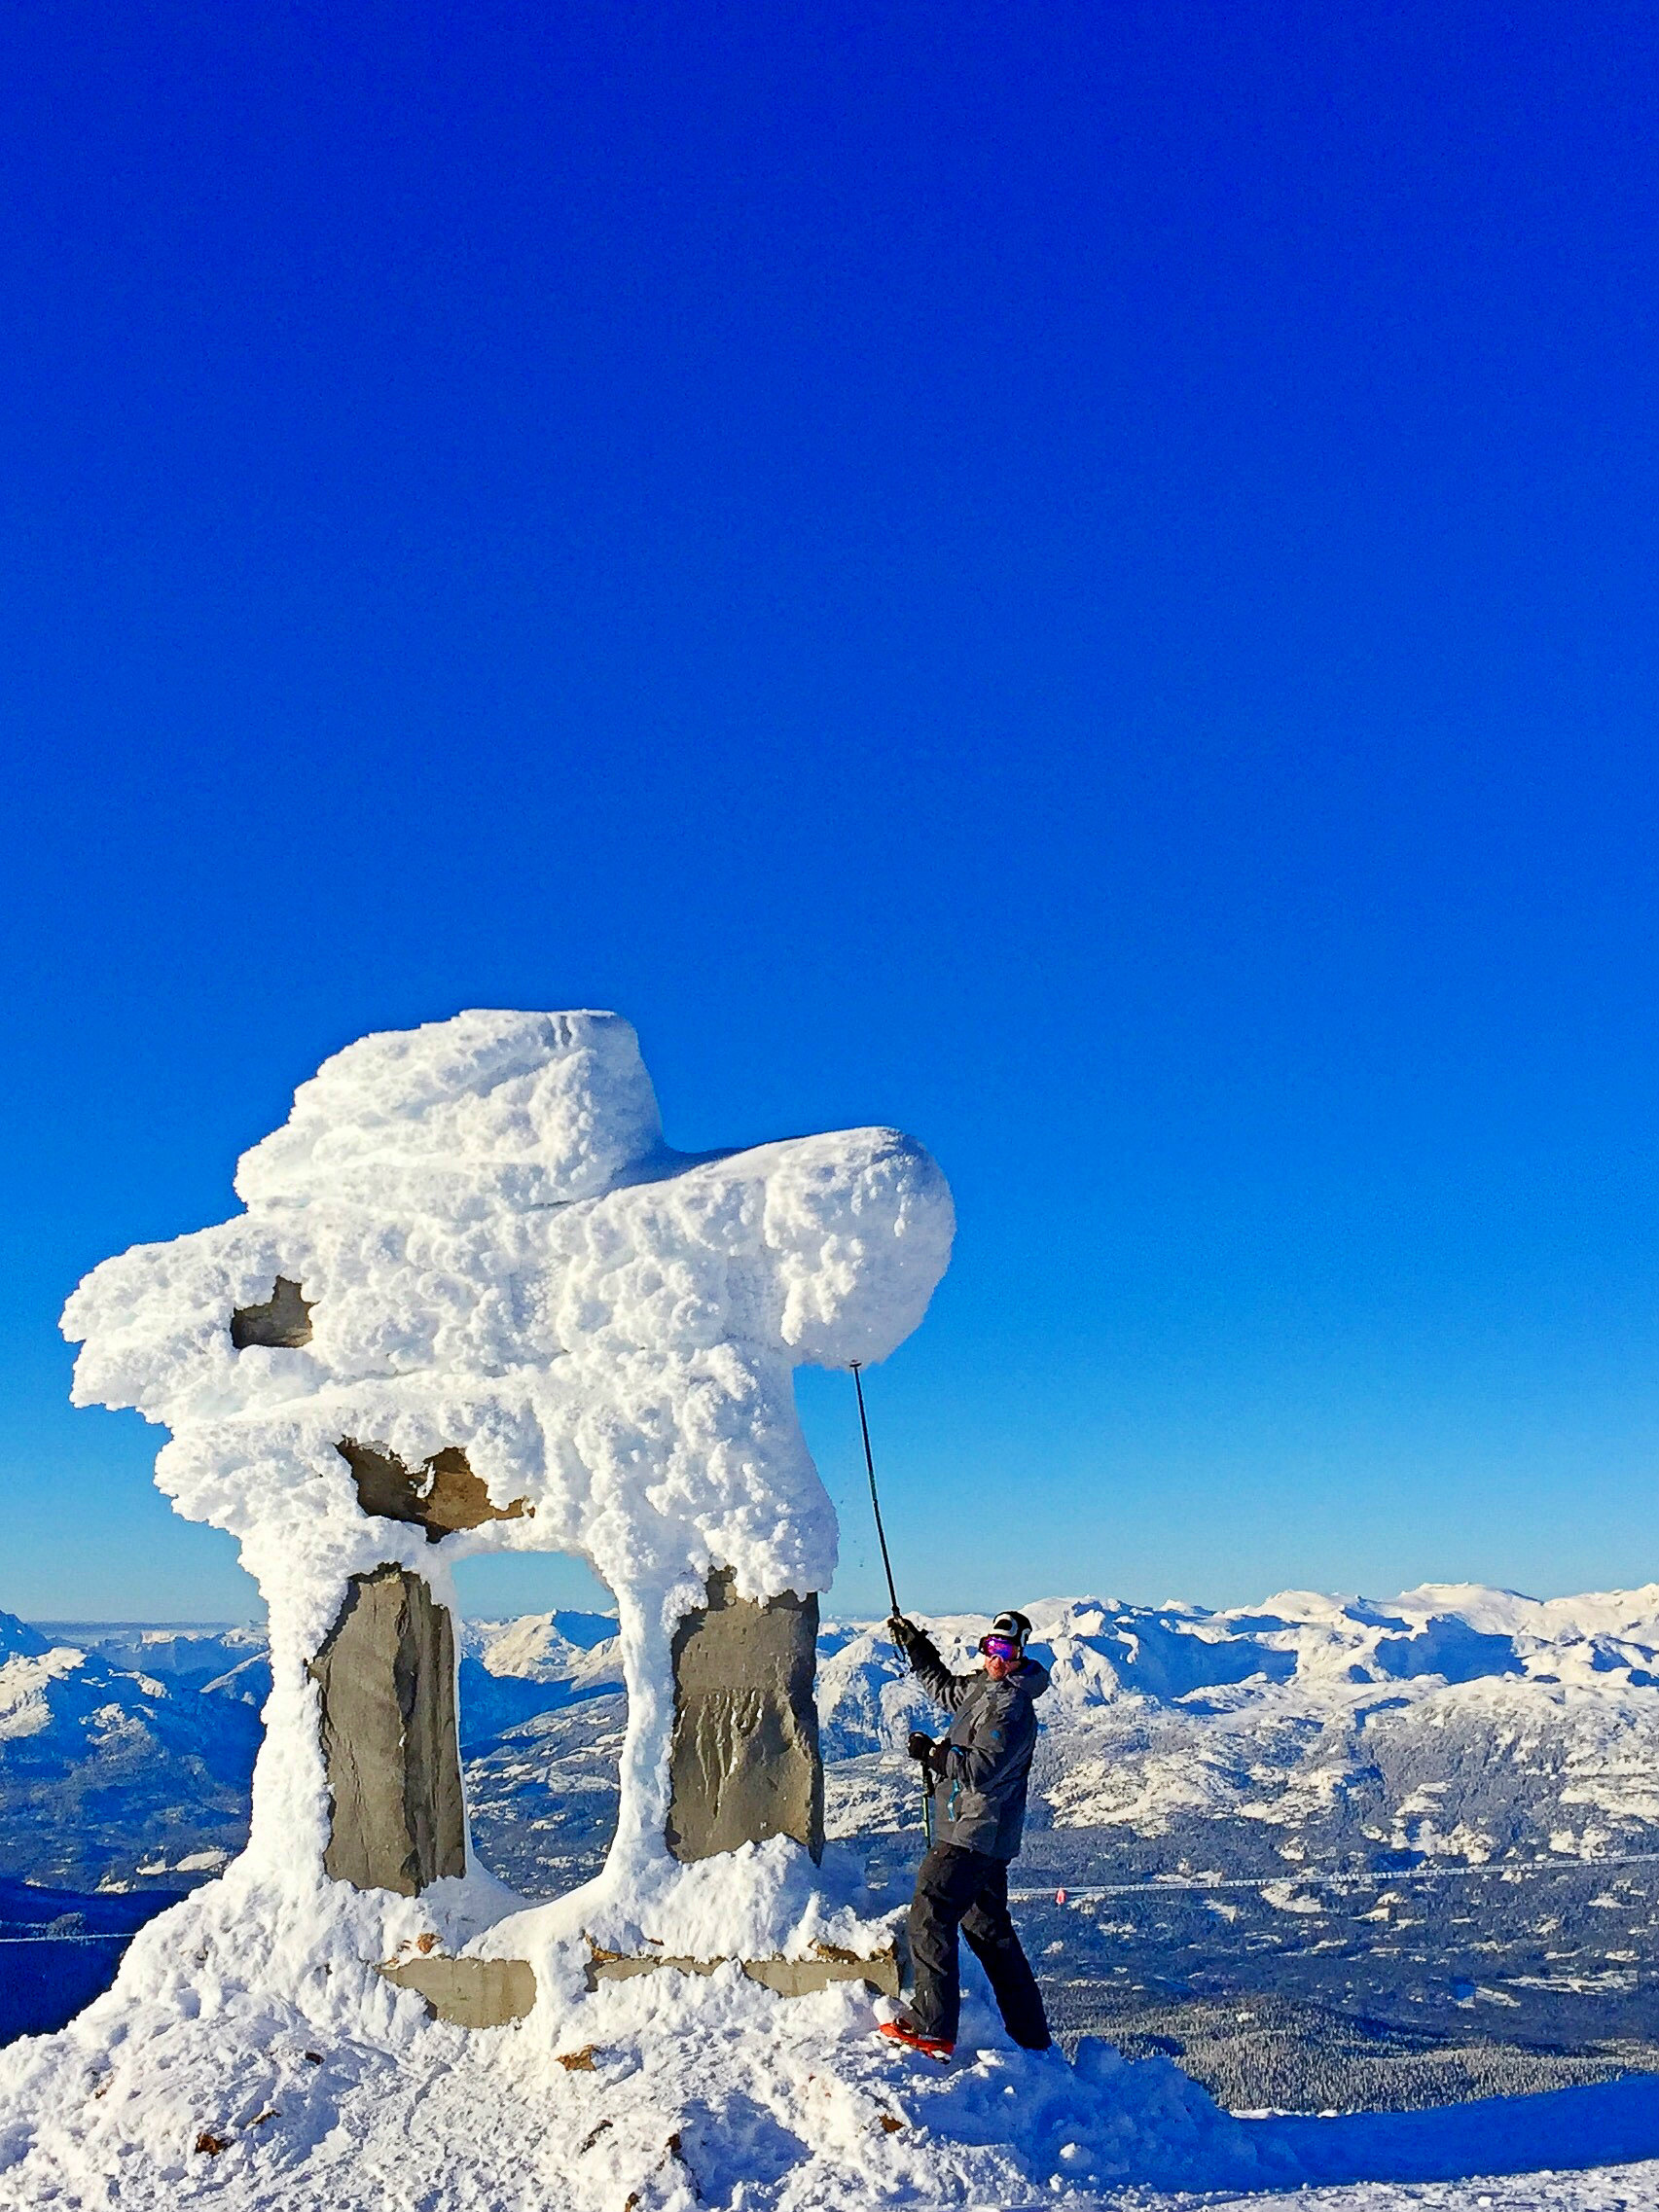 Snow structure atop Whistler mountain in Canada.